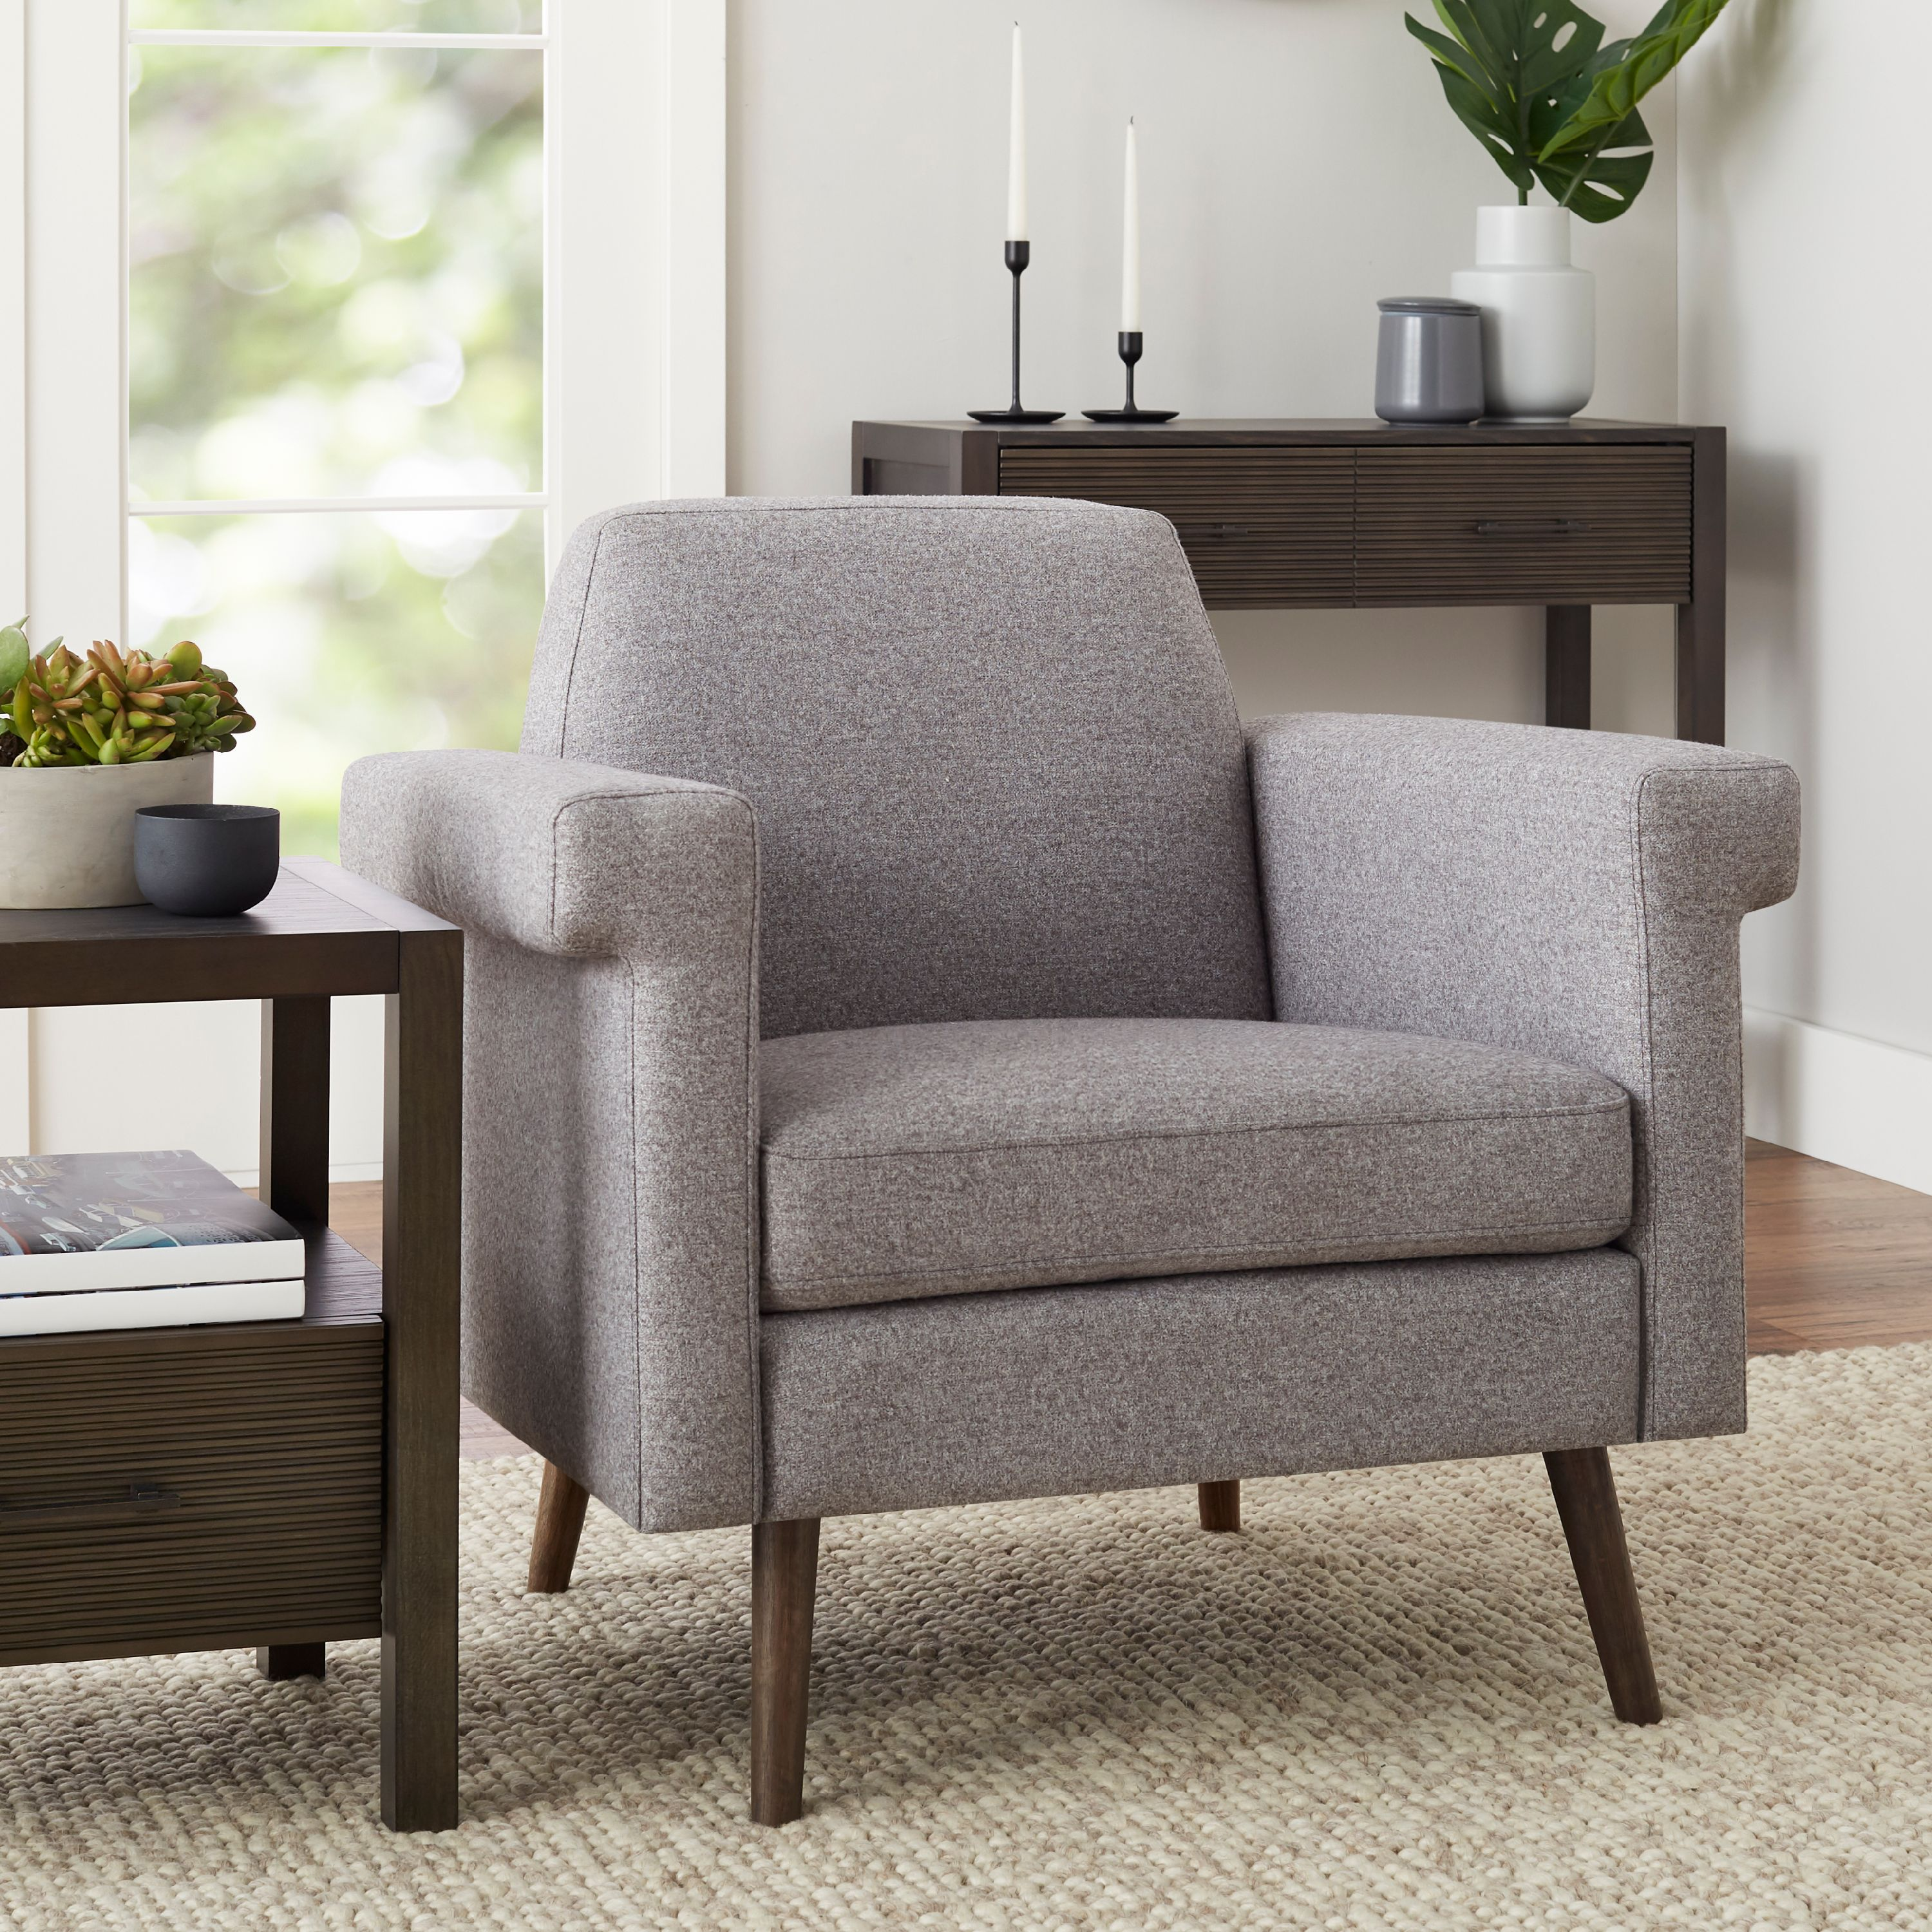 Better Homes & Gardens Remick Lounge Chair, Multiple Colors